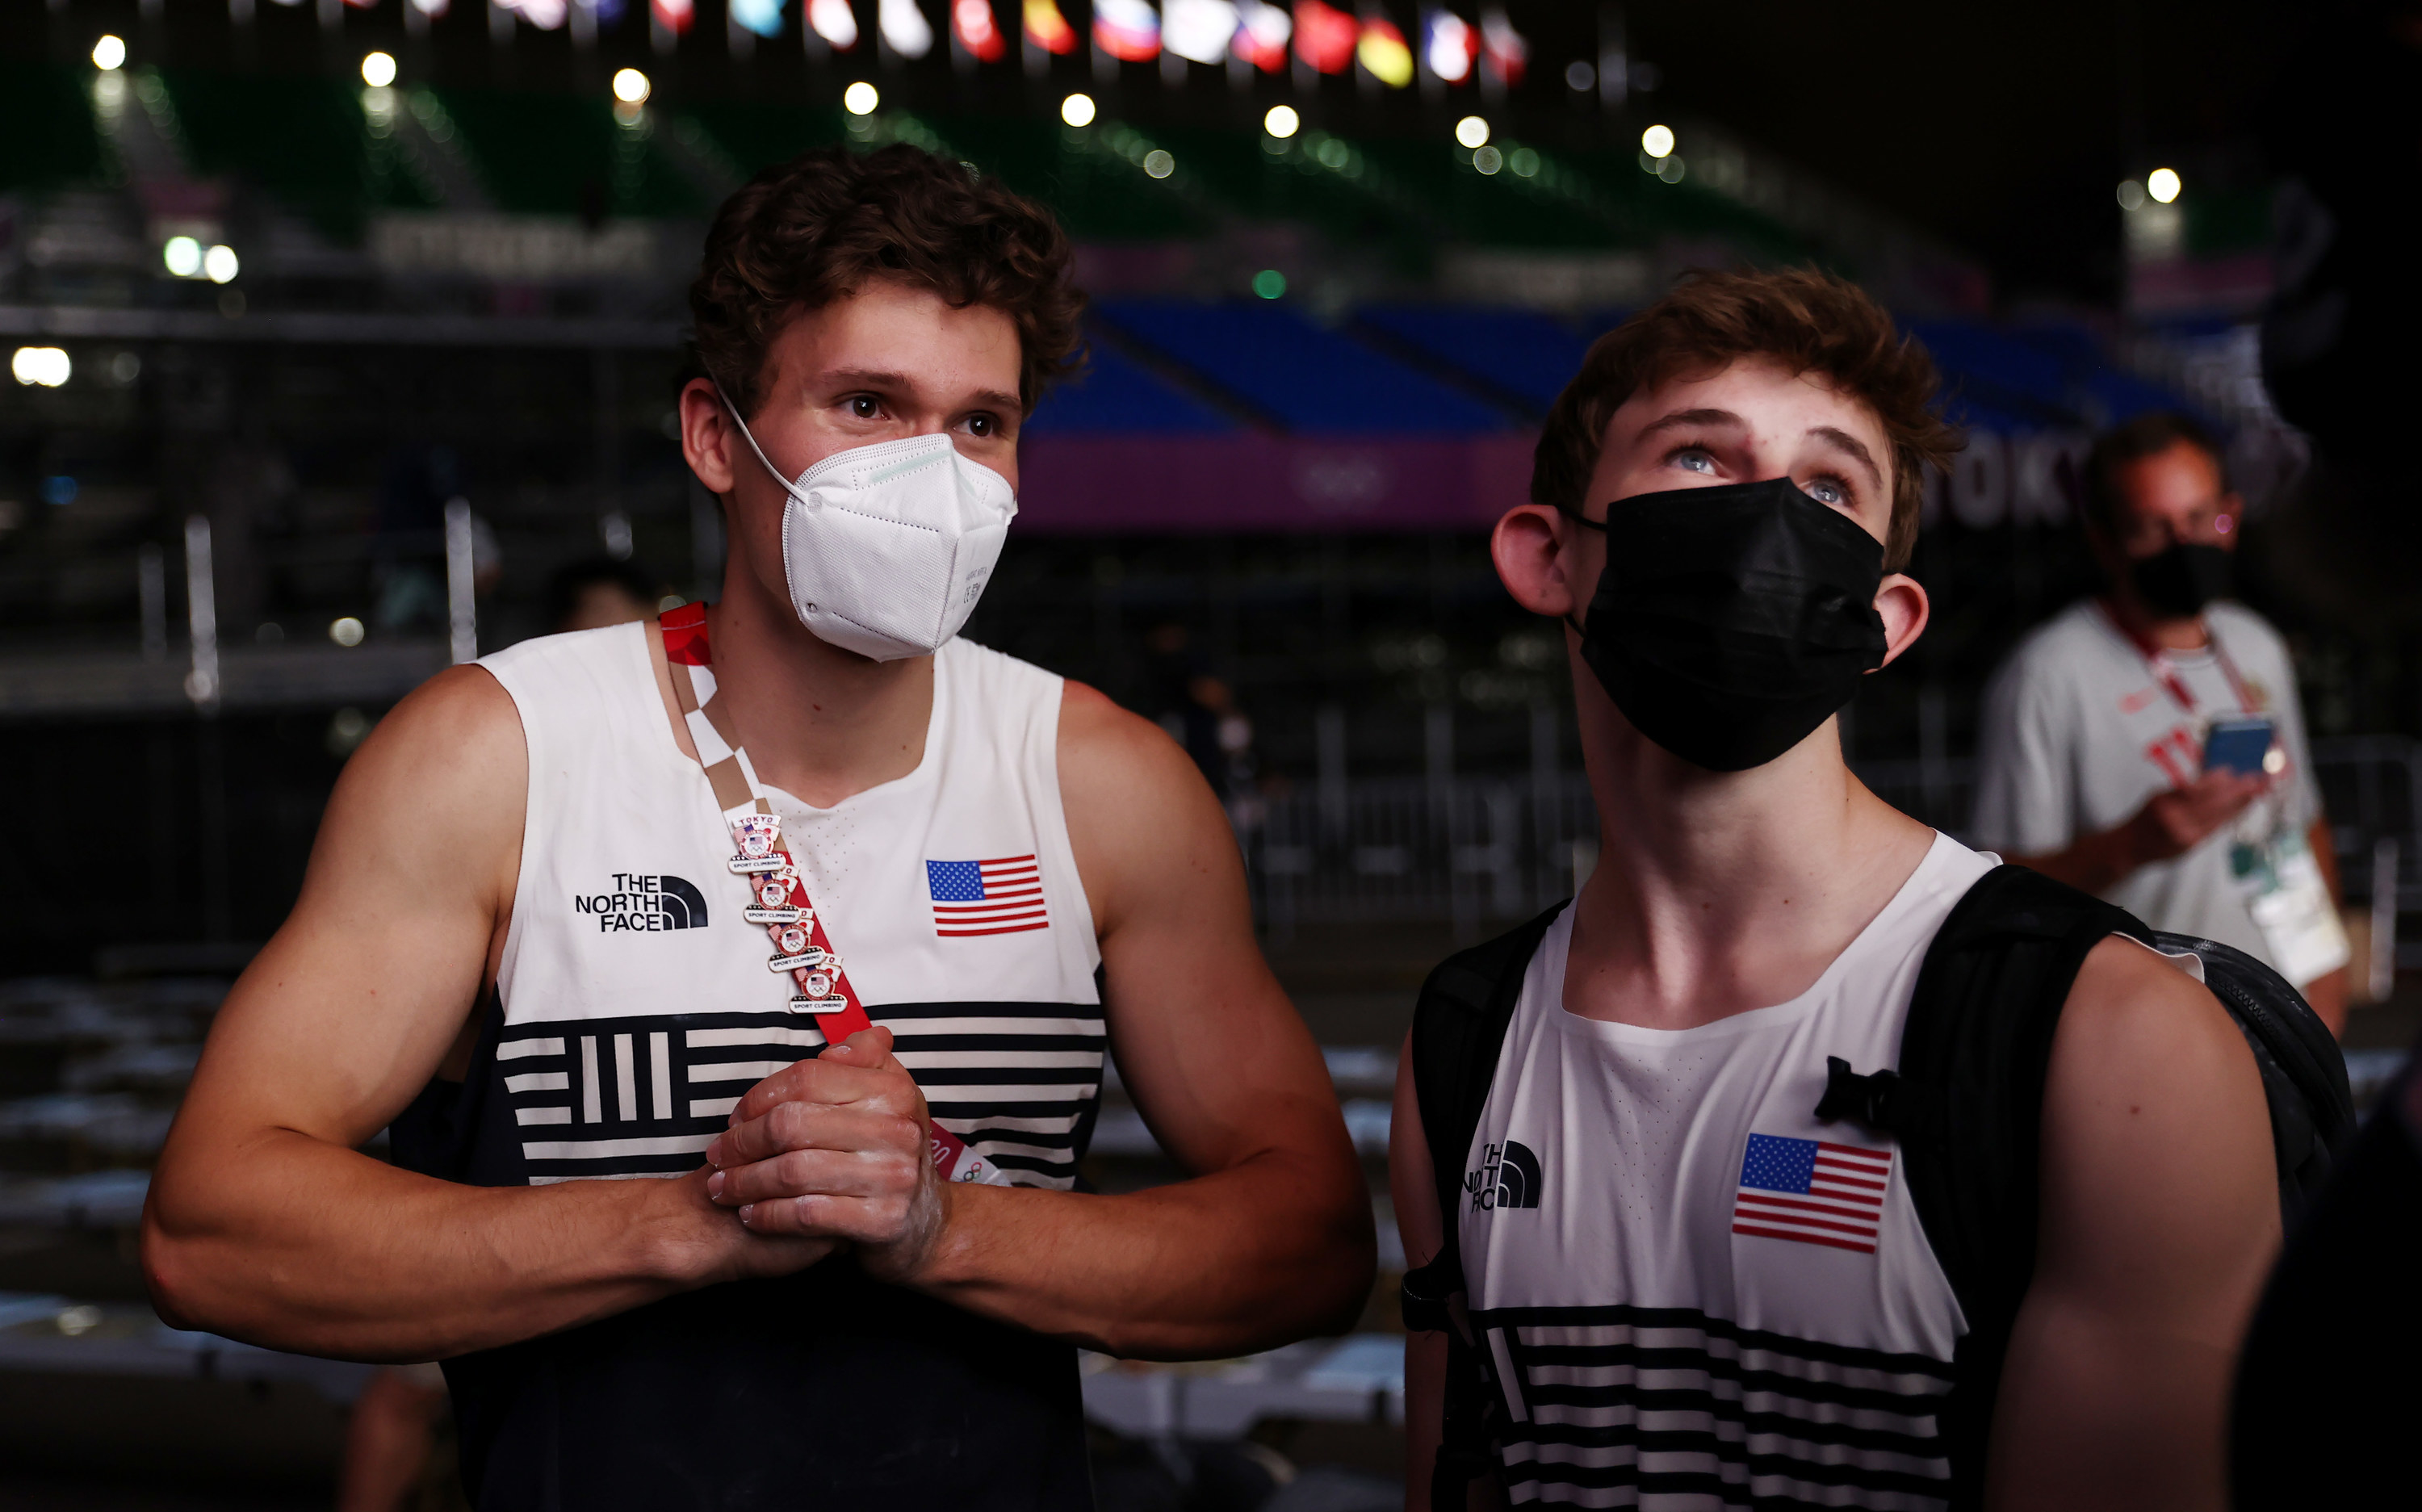 Colin Duffy and Nathaniel Coleman of The United States of America converse after qualifying for the finals